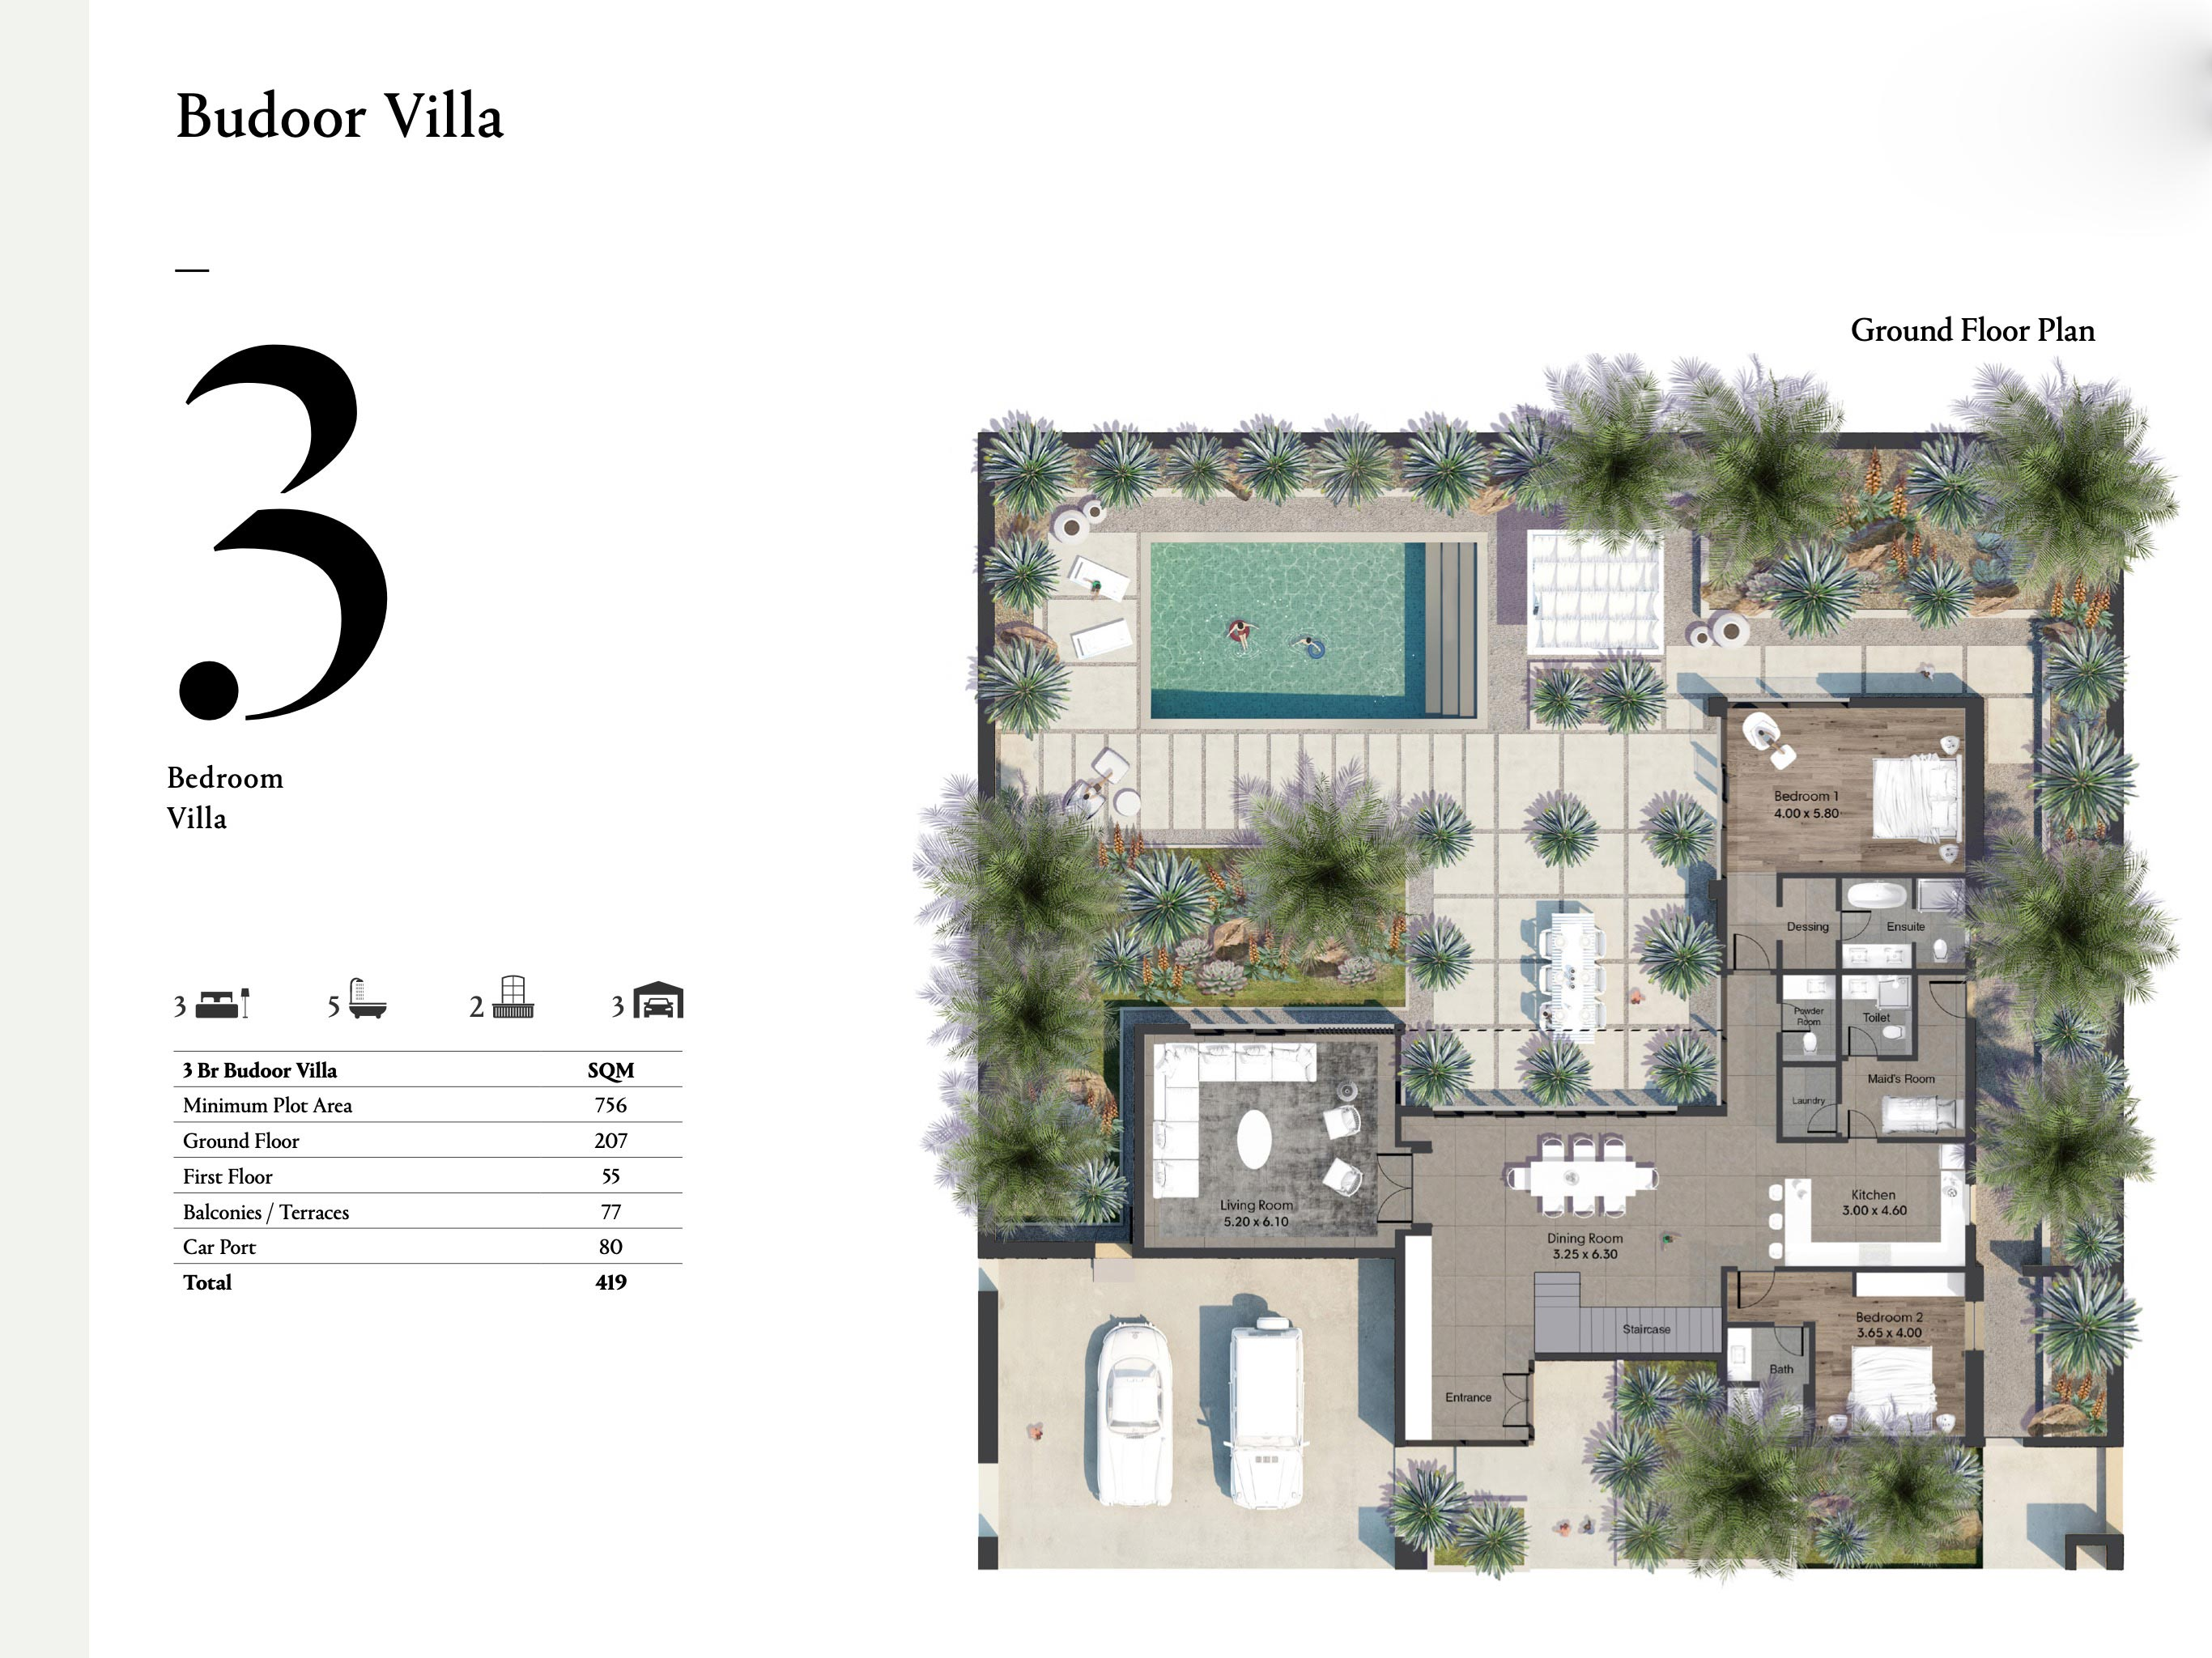 Budoor-Villa-3-Bedroom-Size-419-SQM